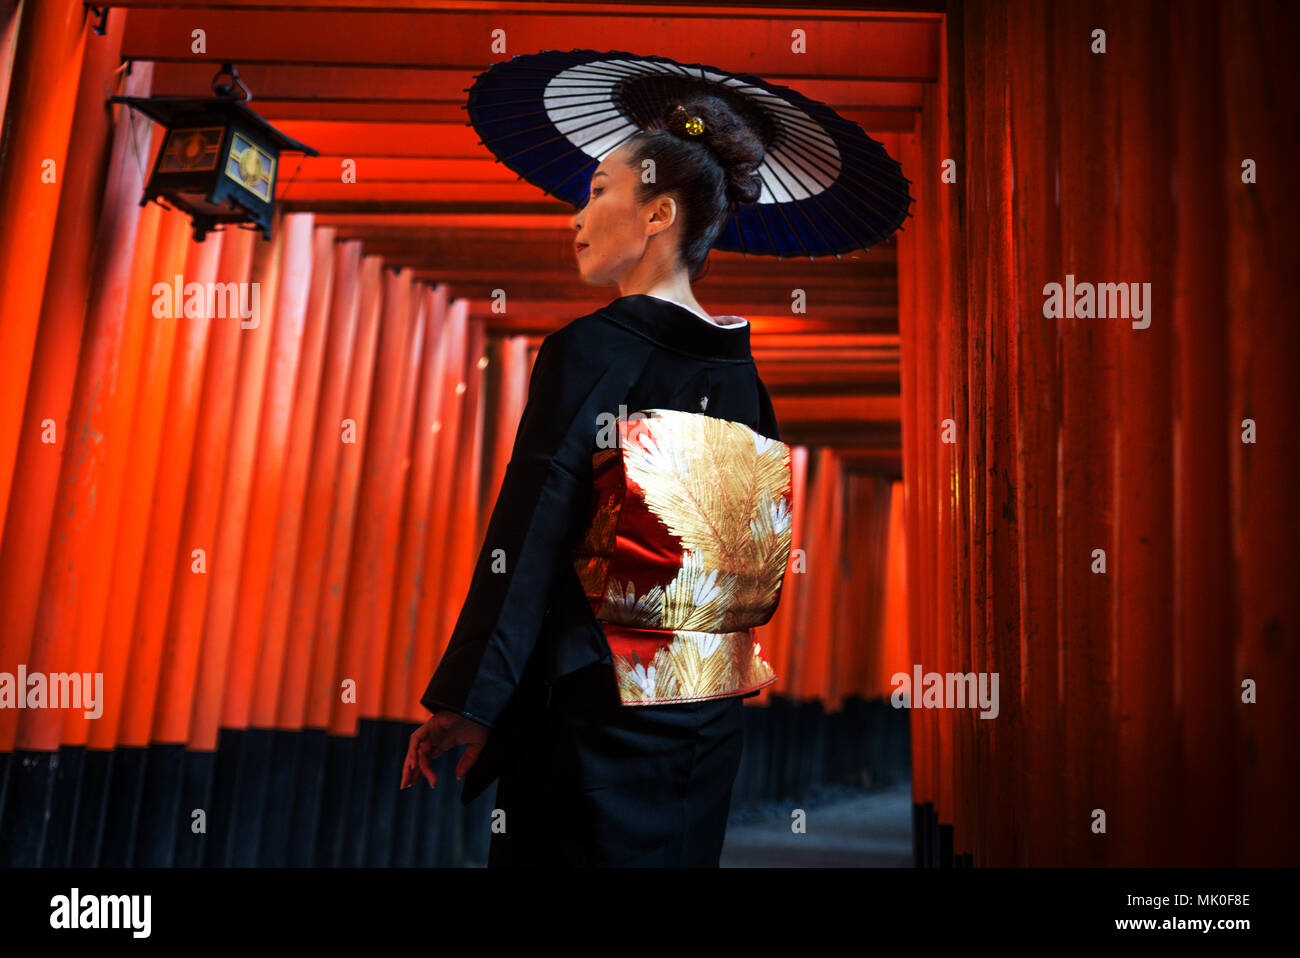 Asian woman in traditional japanese kimonos at Fushimi Inari Shrine in Kyoto, Japan - Stock Image